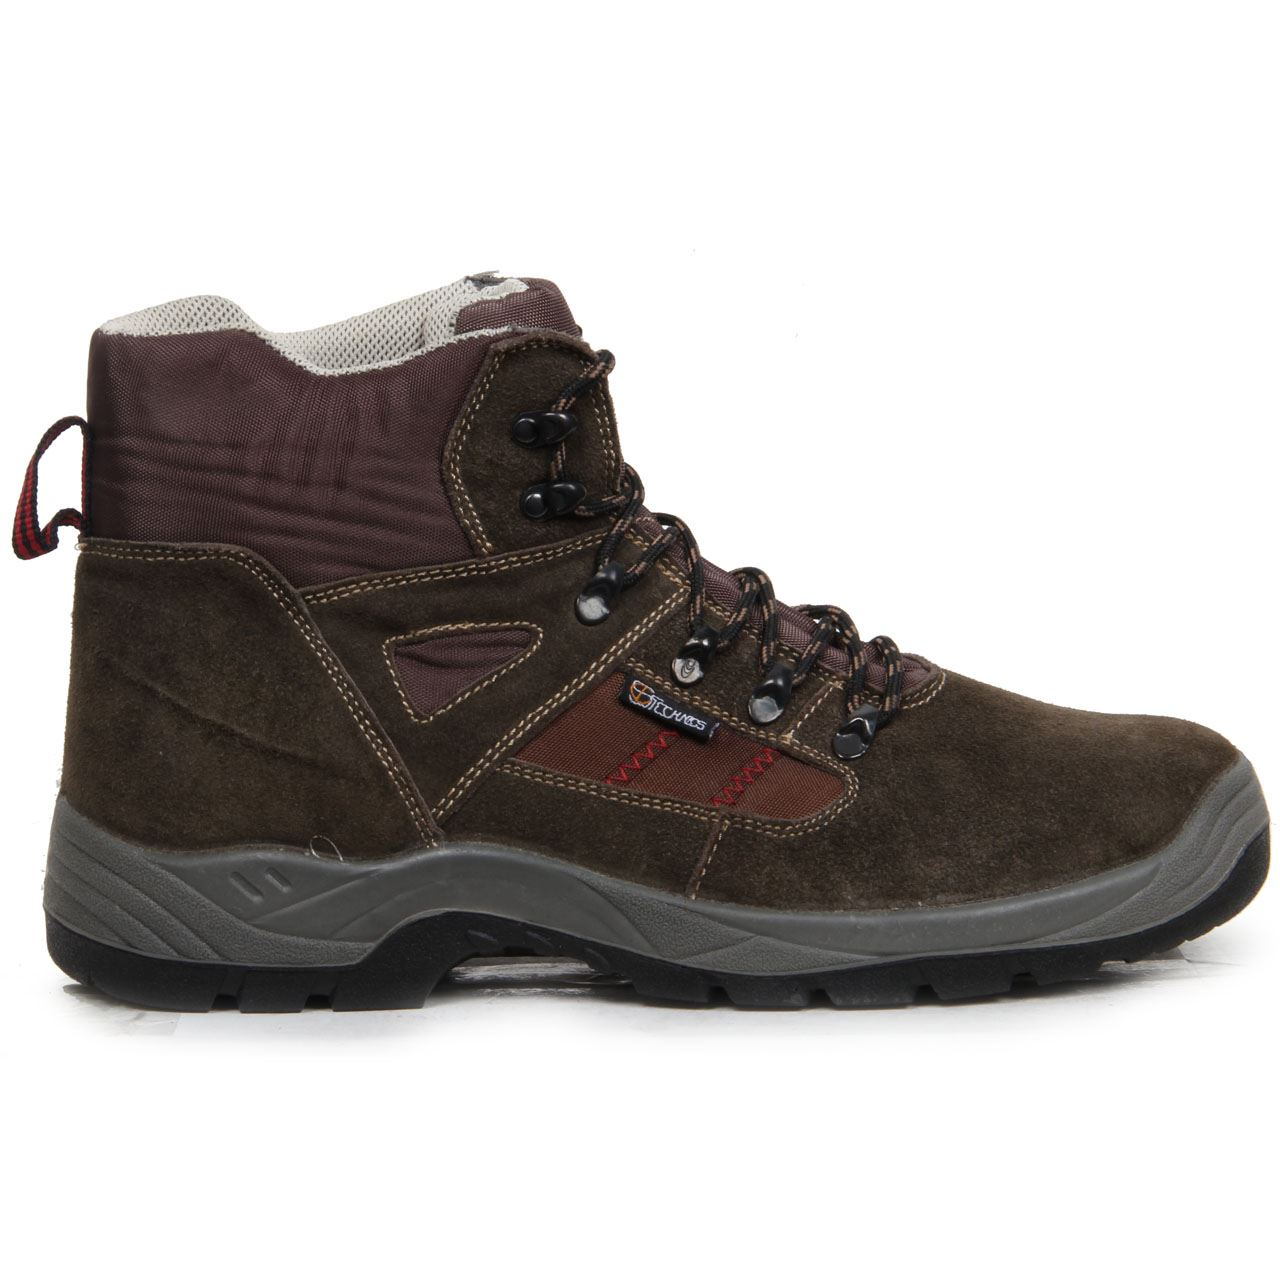 Mens Safety Shoes, Leather Work Boots, Steel Toe Cap Grounwork ...